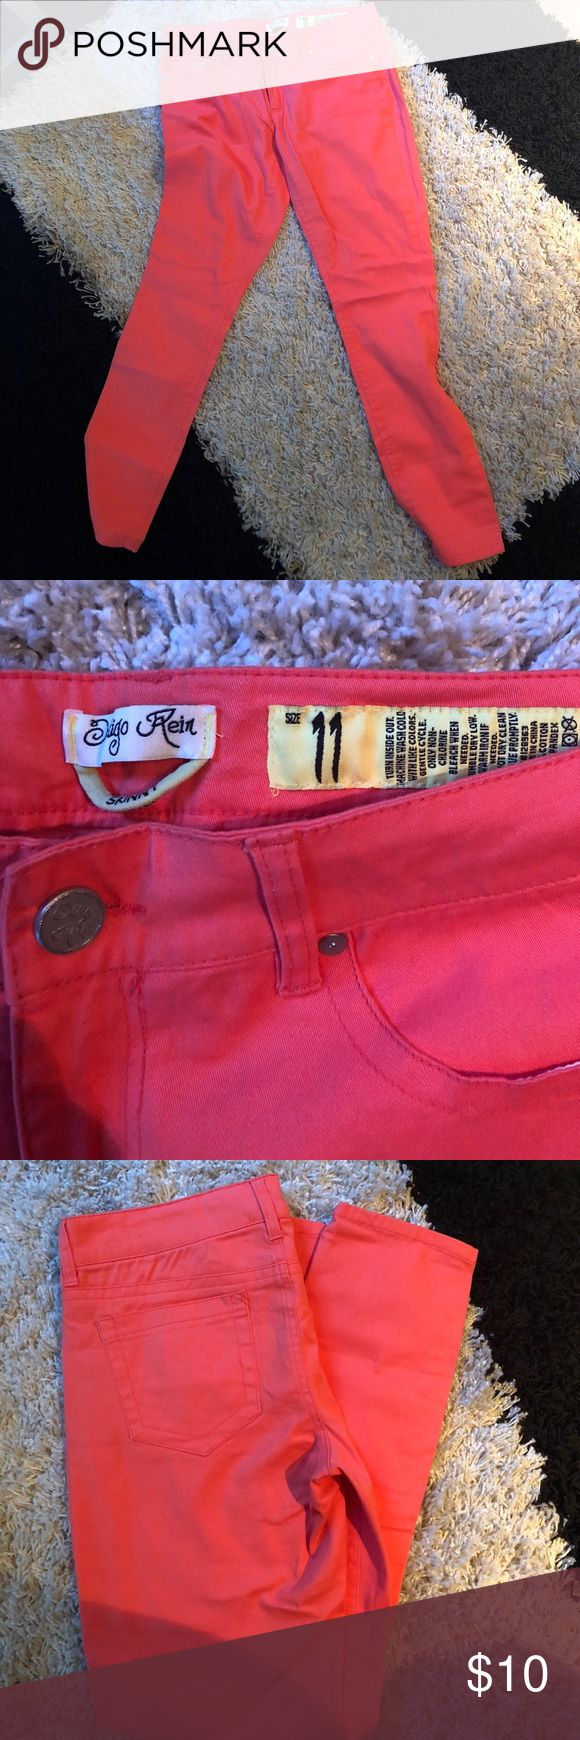 Coral skinny jeans Used in excellent condition. Size 11 Indigo Rein Pants Skinny